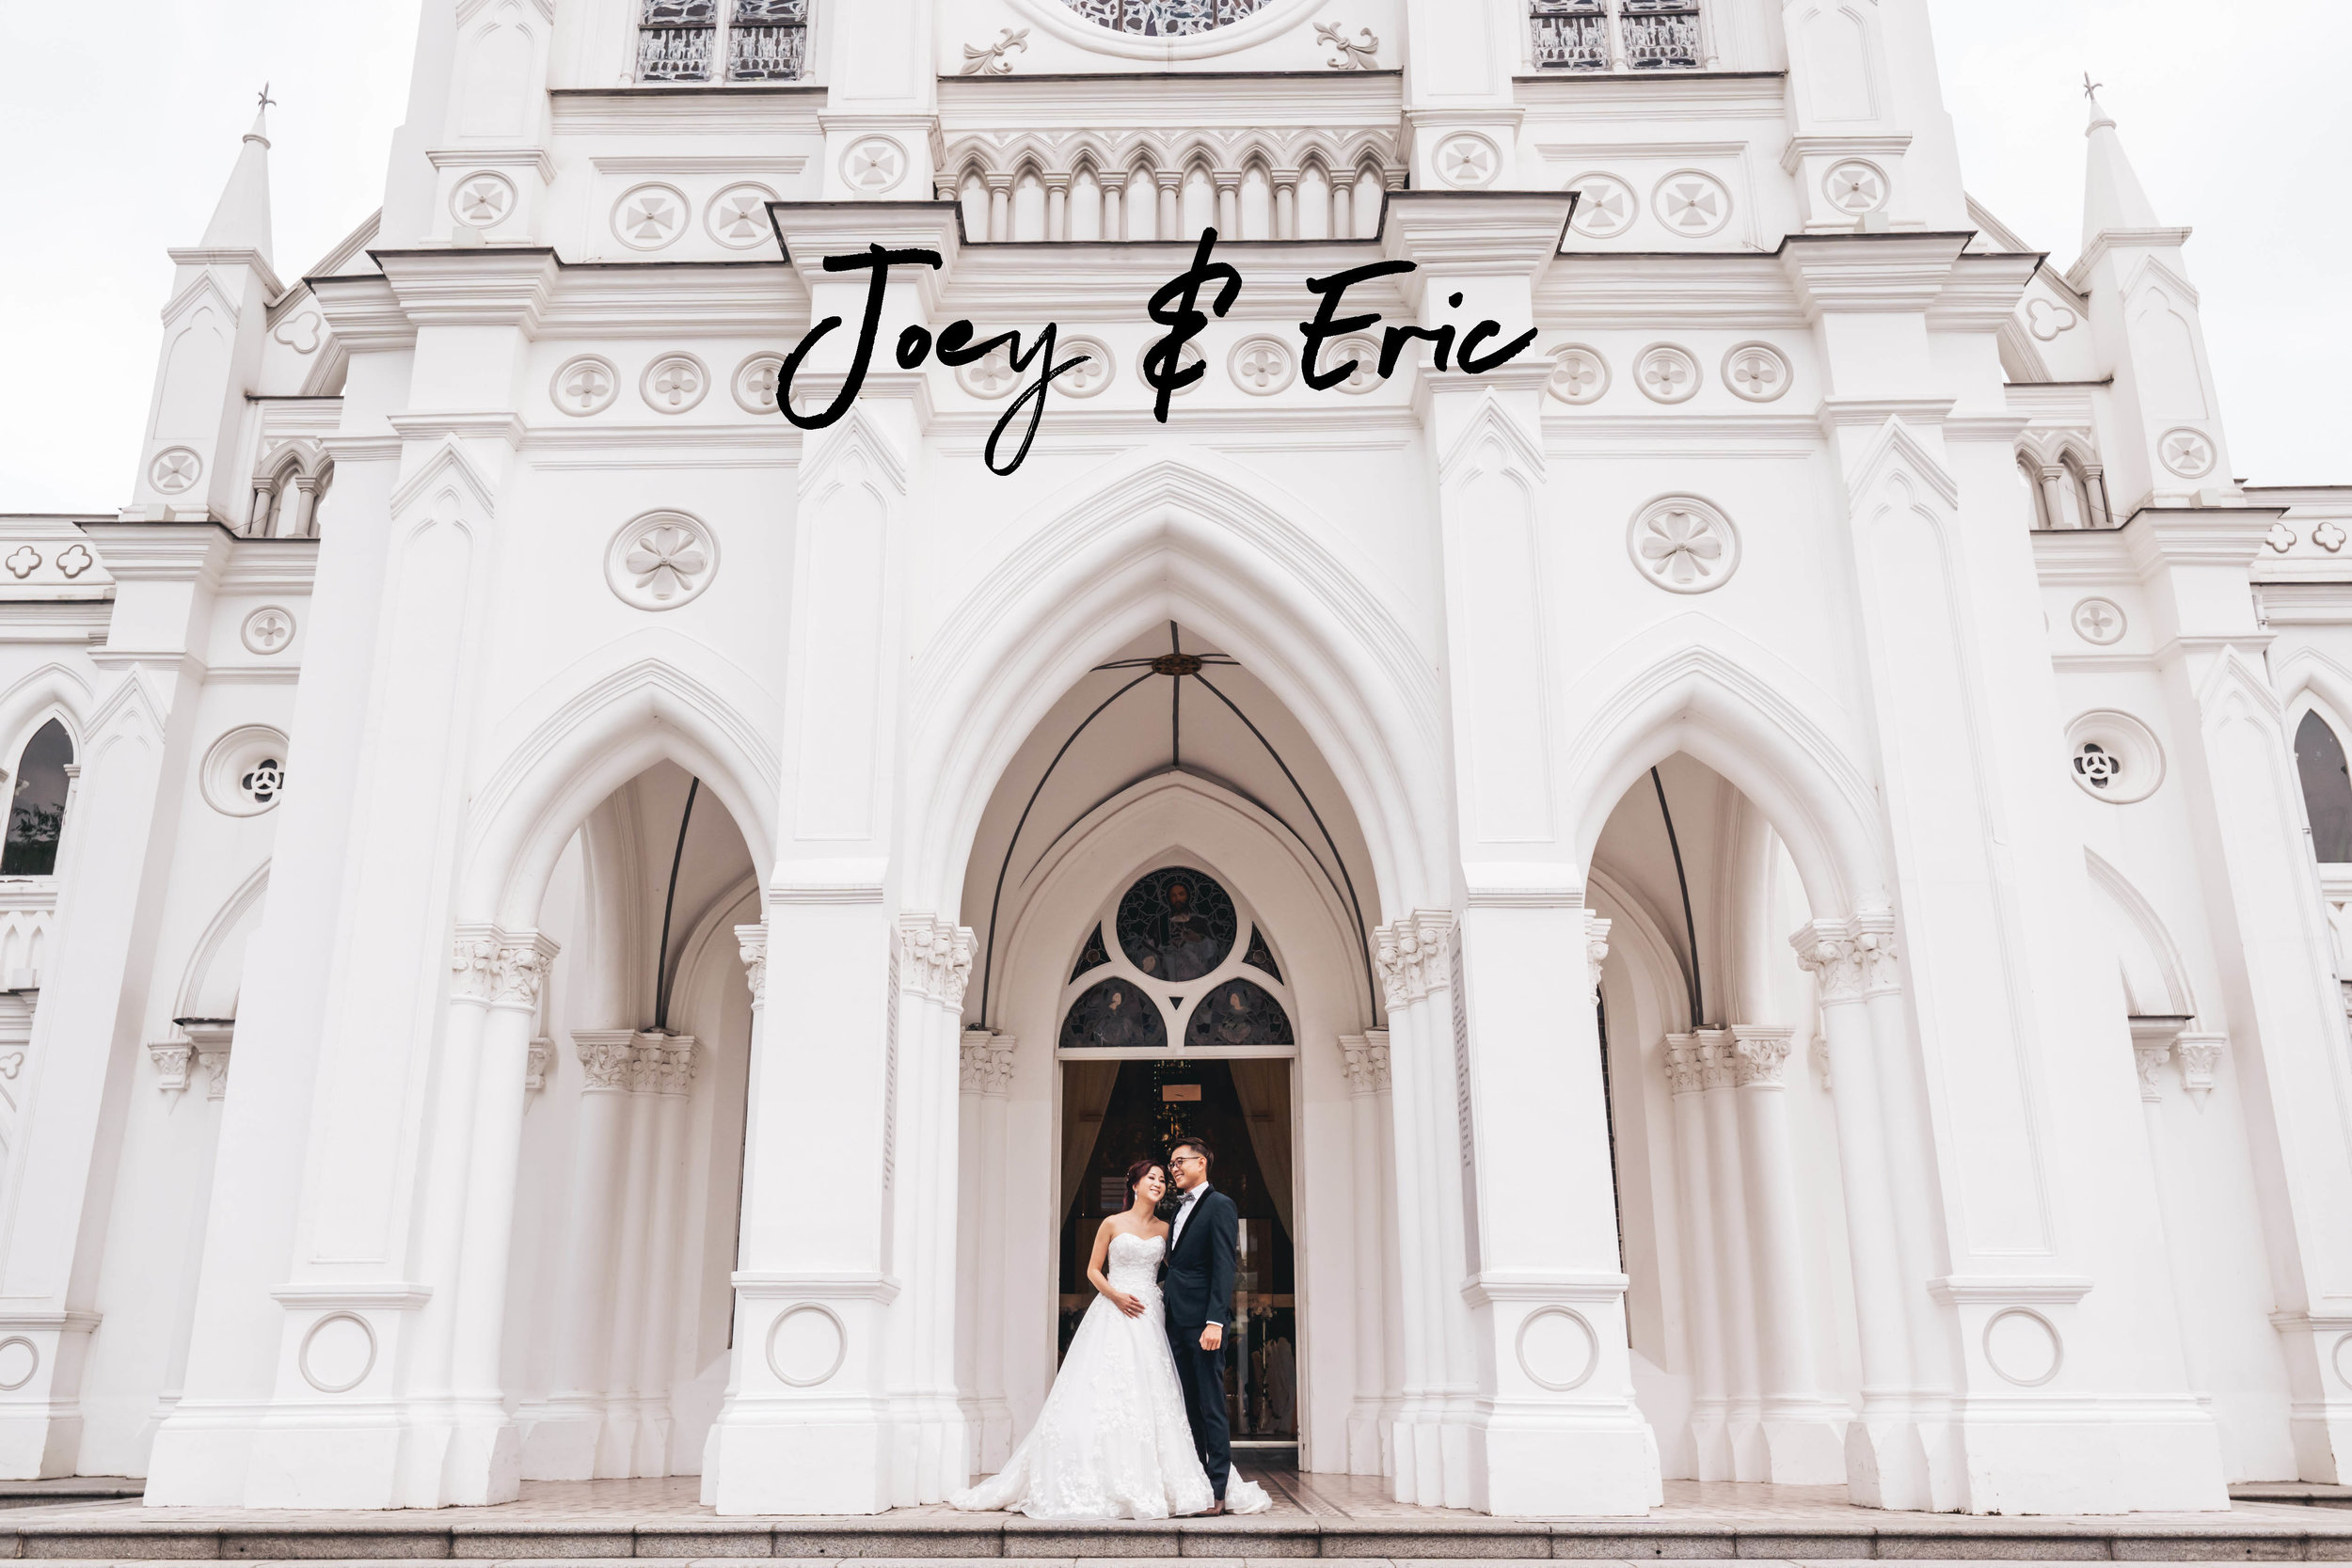 20181104_Joey and Eric_Chijmes (4 of 70) copy Cover.jpg